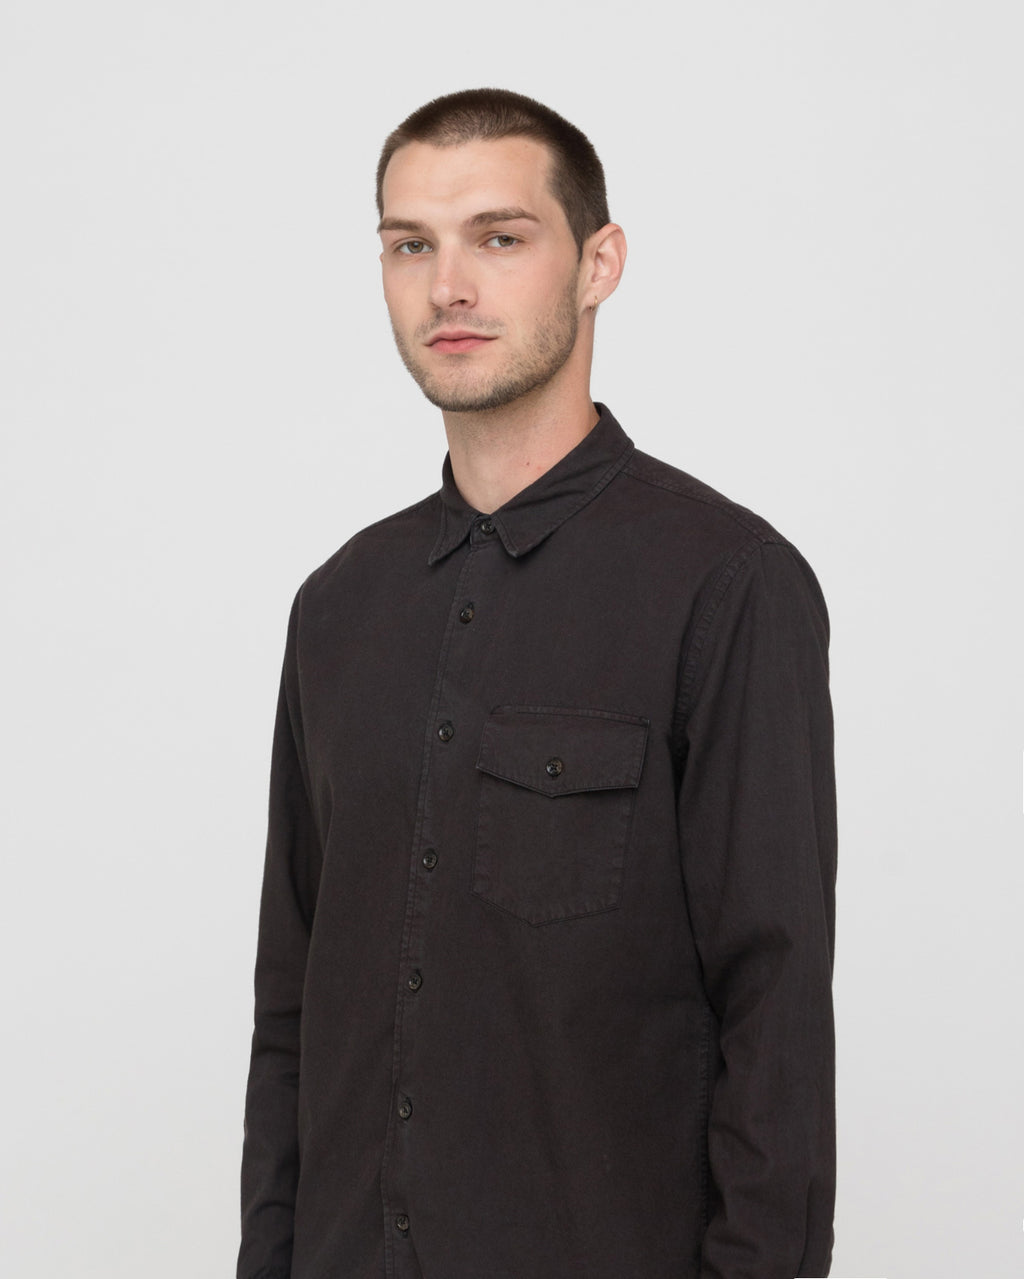 The Greer Shirt in Black